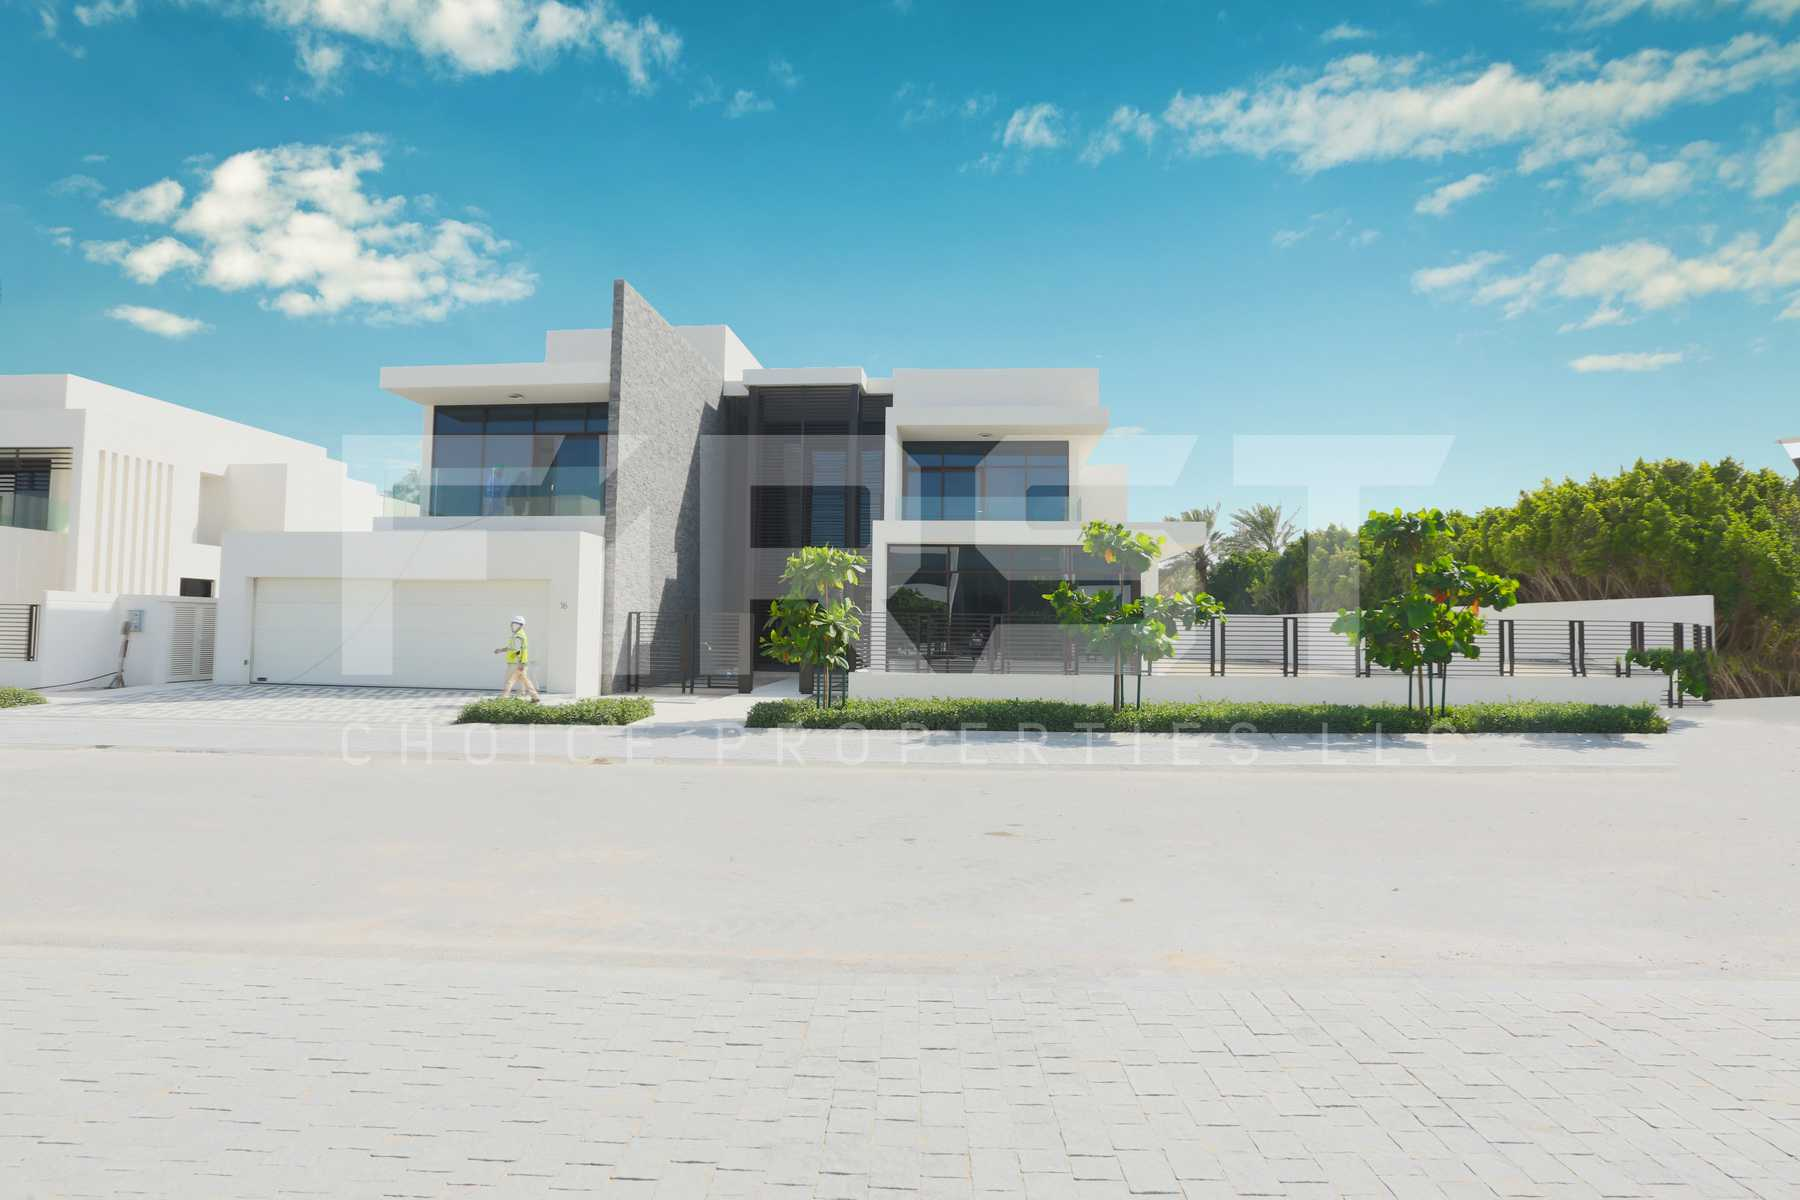 External Photo of 4 Bedroom Villa in Jawaher Saadiyat Saadiyat Island Abu Dhabi UAE (3).jpg